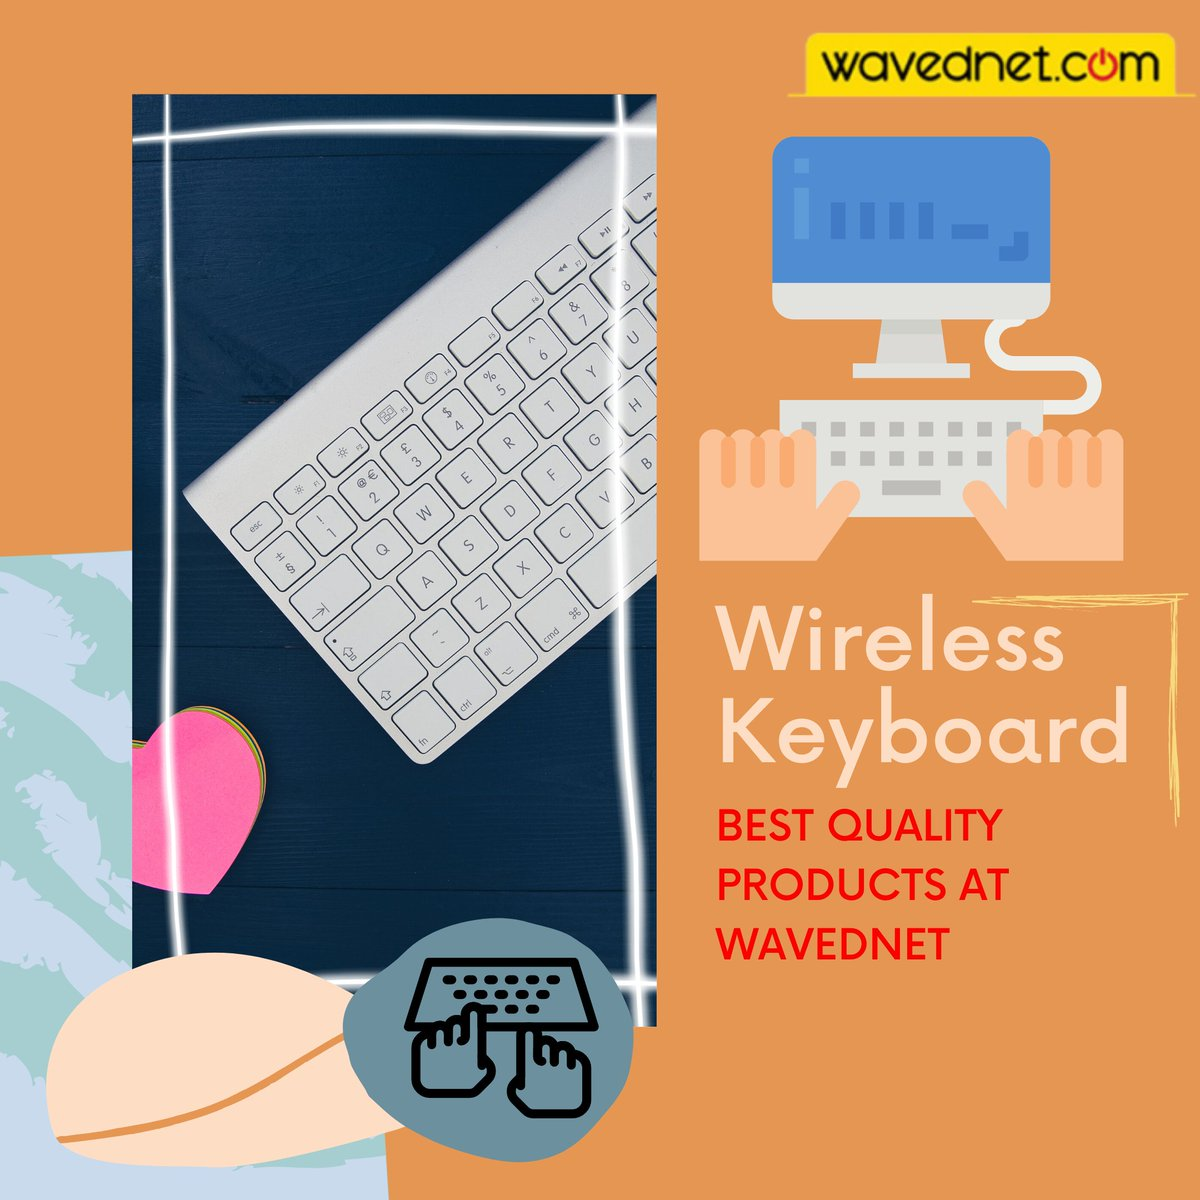 Get wireless keyboards at the best prices in UAE. You can order it from our website http://www.wavednet.com ⠀ #keyboard #computer #pcparts #computersetup #computeraccessories #computertech #bestgamingsetups #minimalsetups #officialsetups #pcsetups #desksetups #cleansetups pic.twitter.com/fqHKfjUhwt